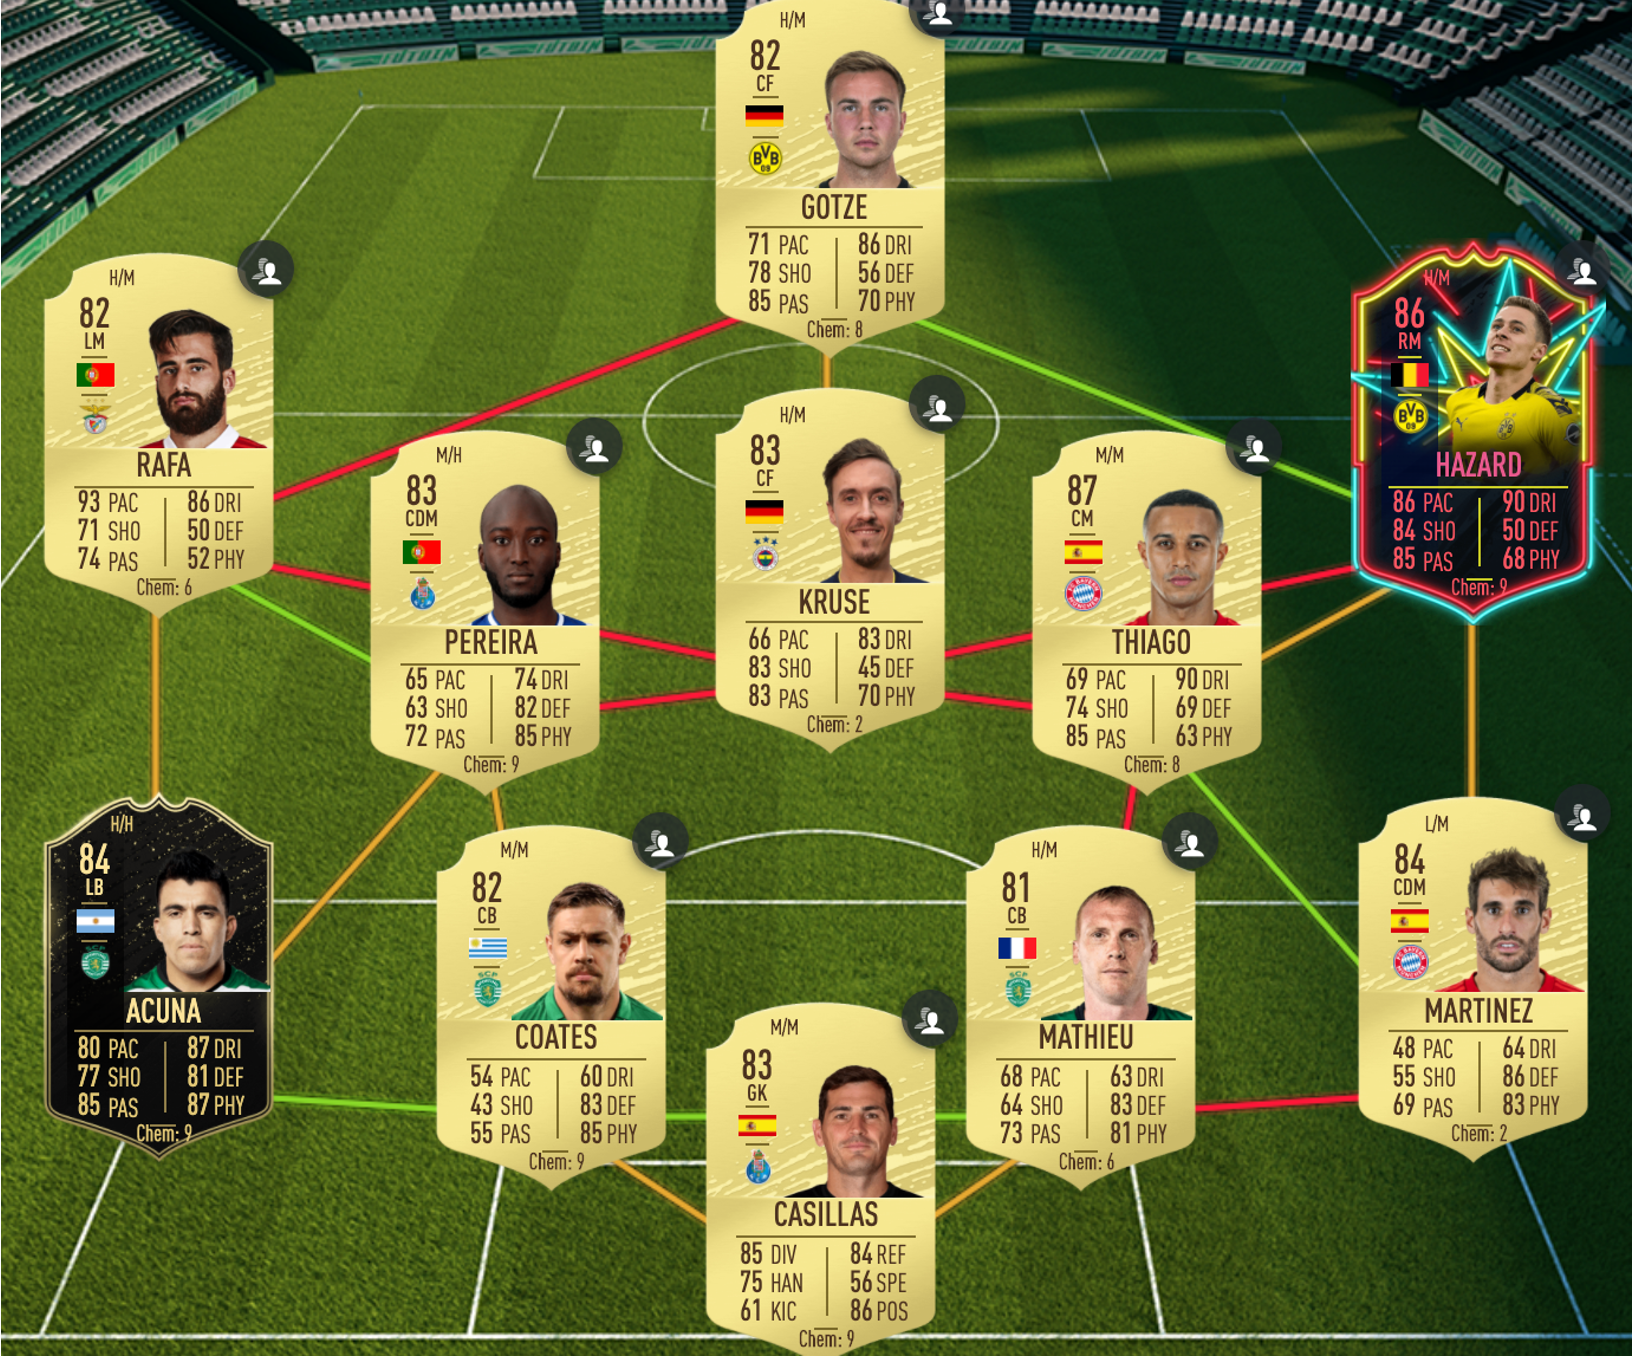 The SBC solution for FIFA 20's Summer Heat challenge of Jean-Paul Boëtius